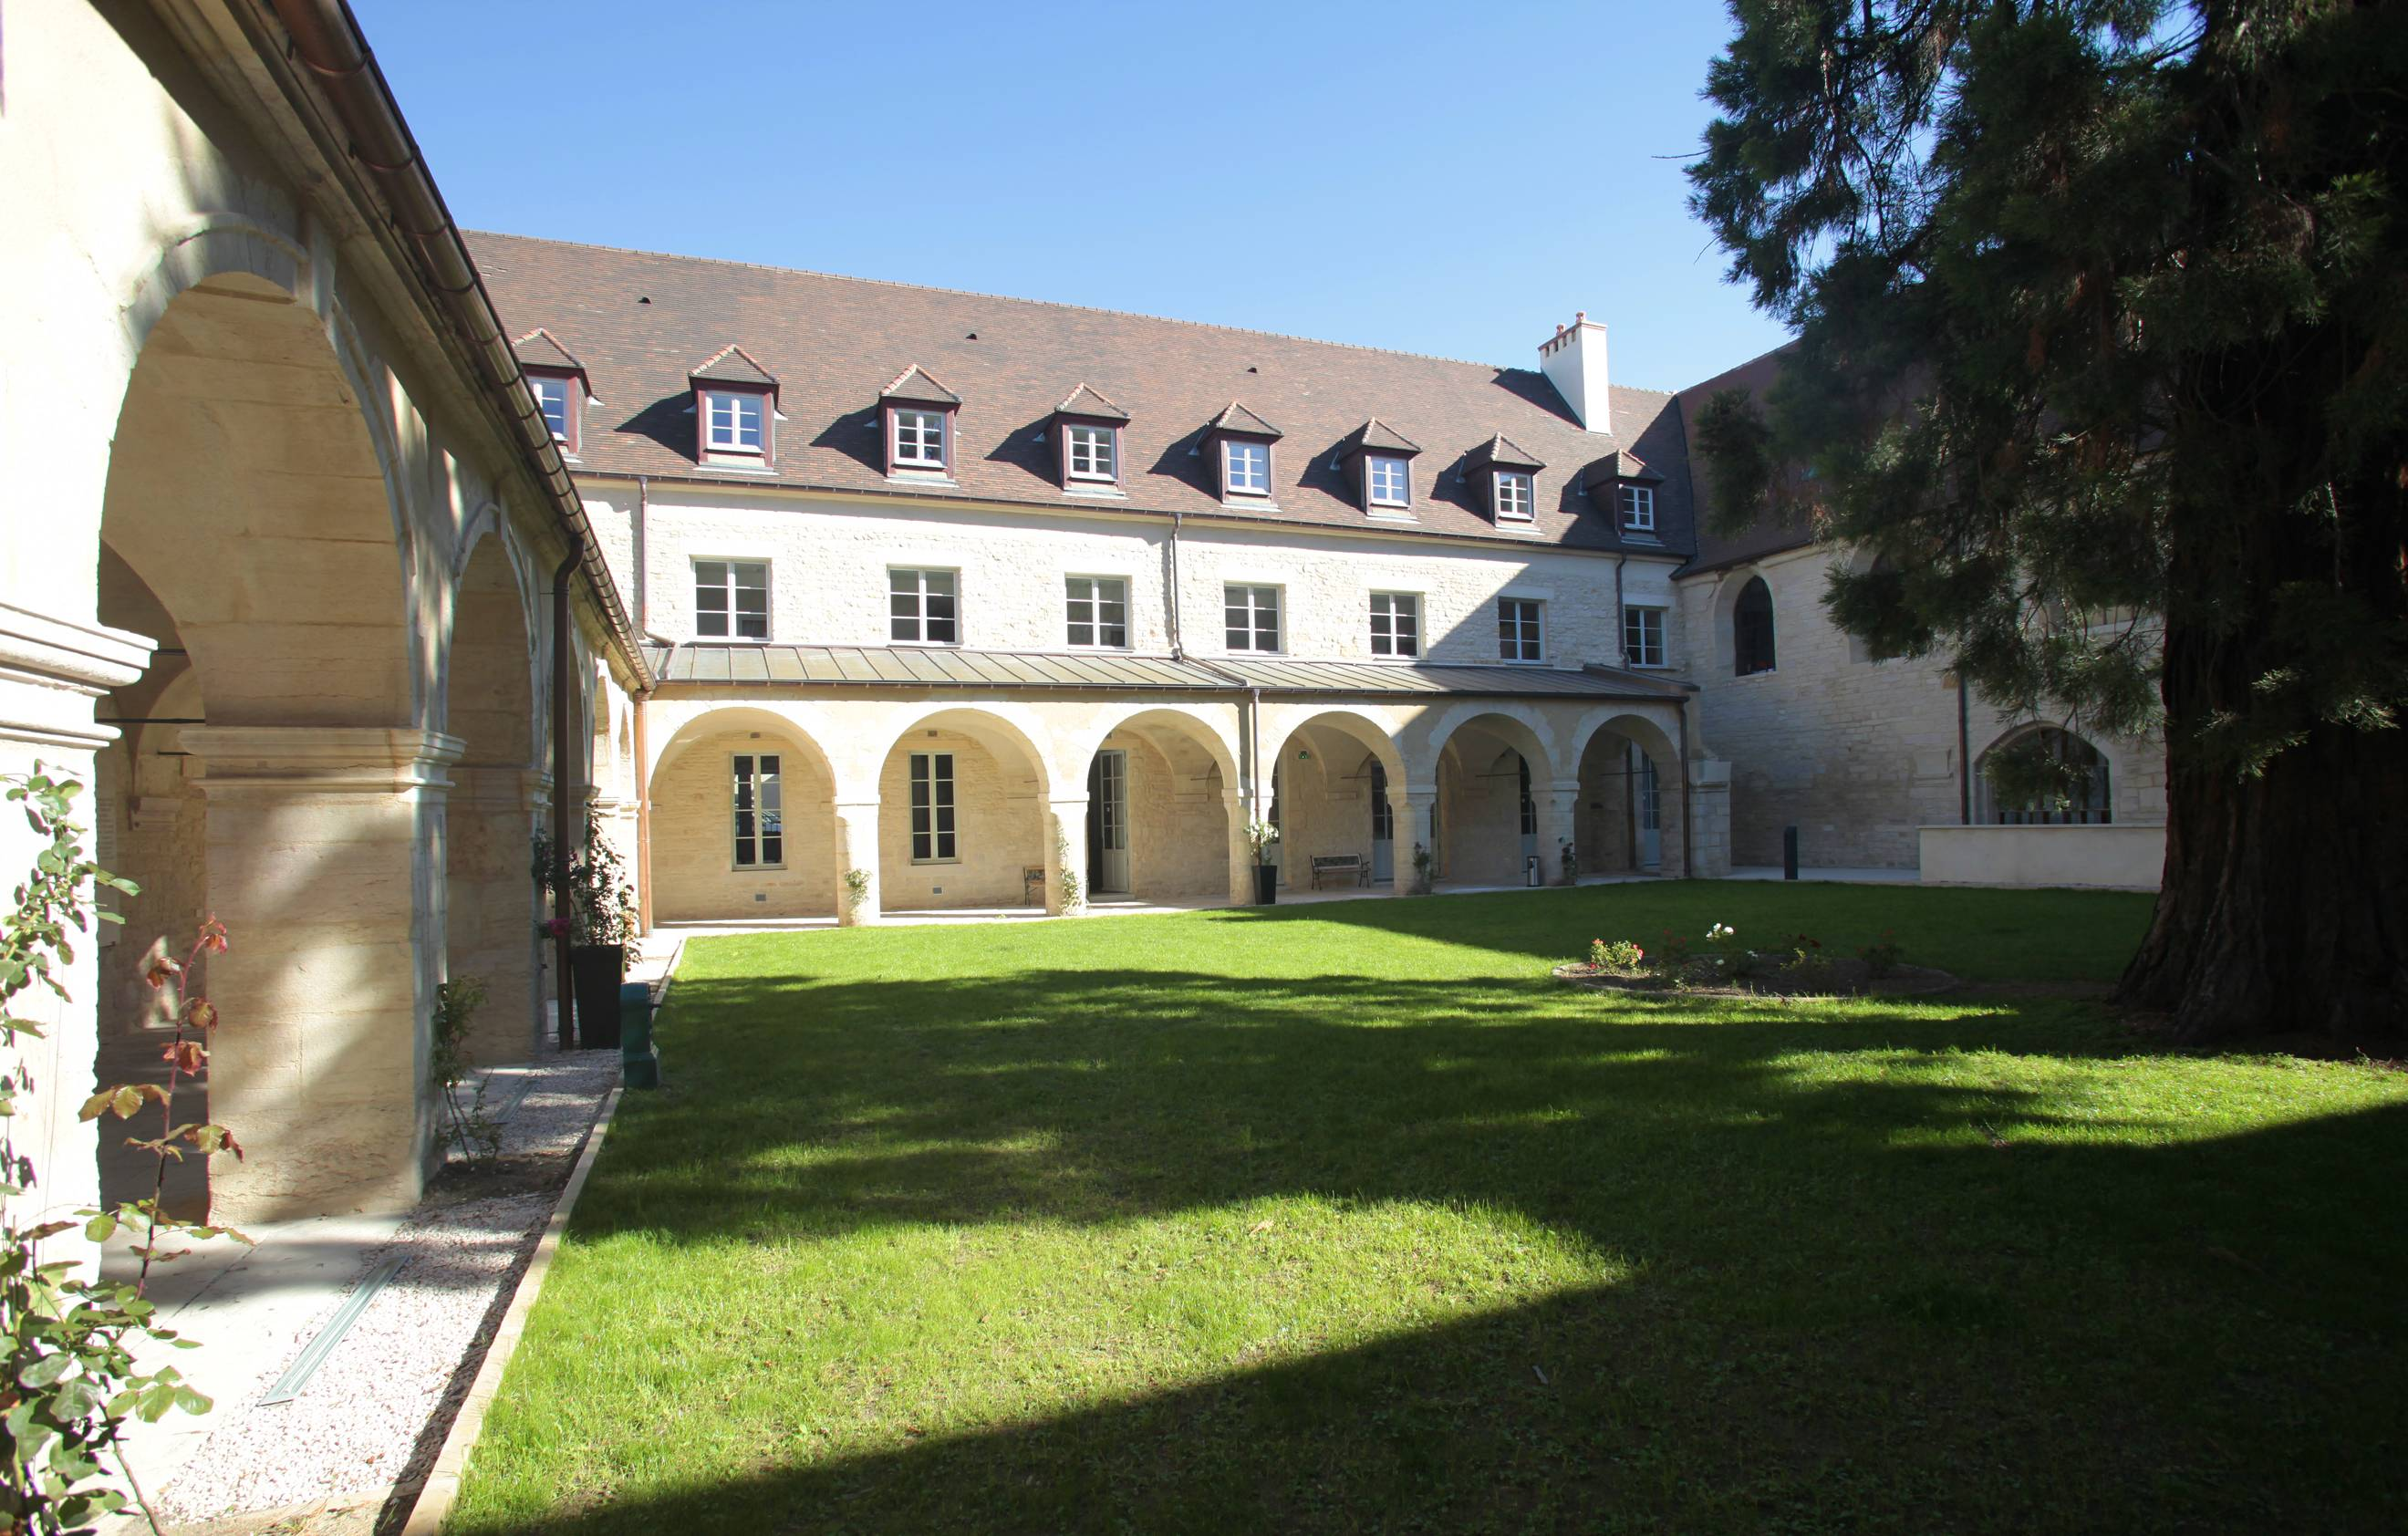 Location dijon appart h tel les cordeliers odalys for Location appart hotel